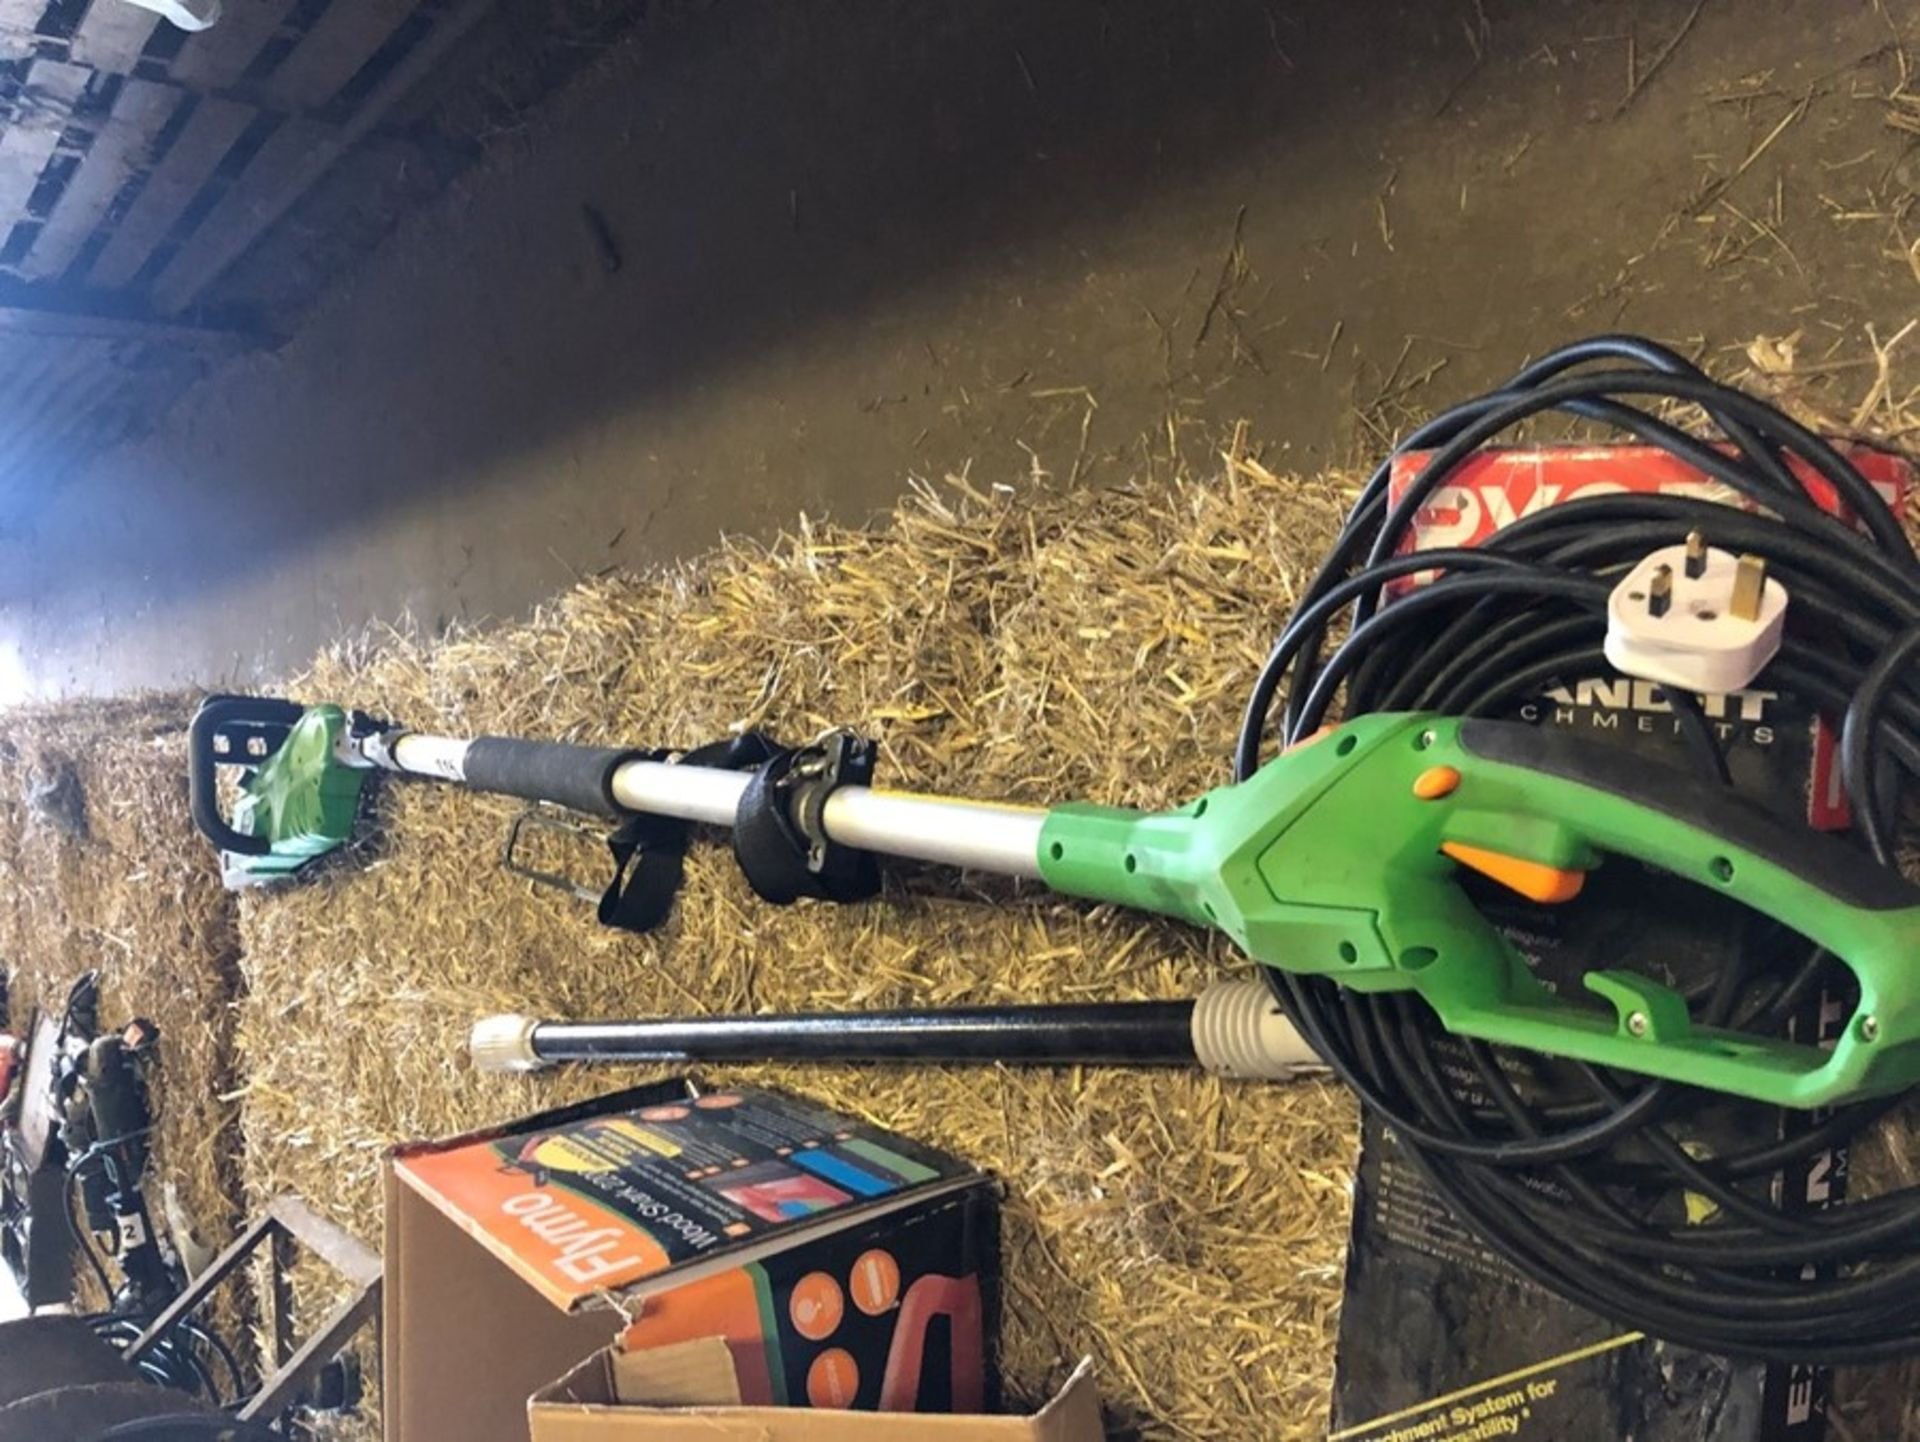 Electric telescopic chainsaw - Passed PAT test